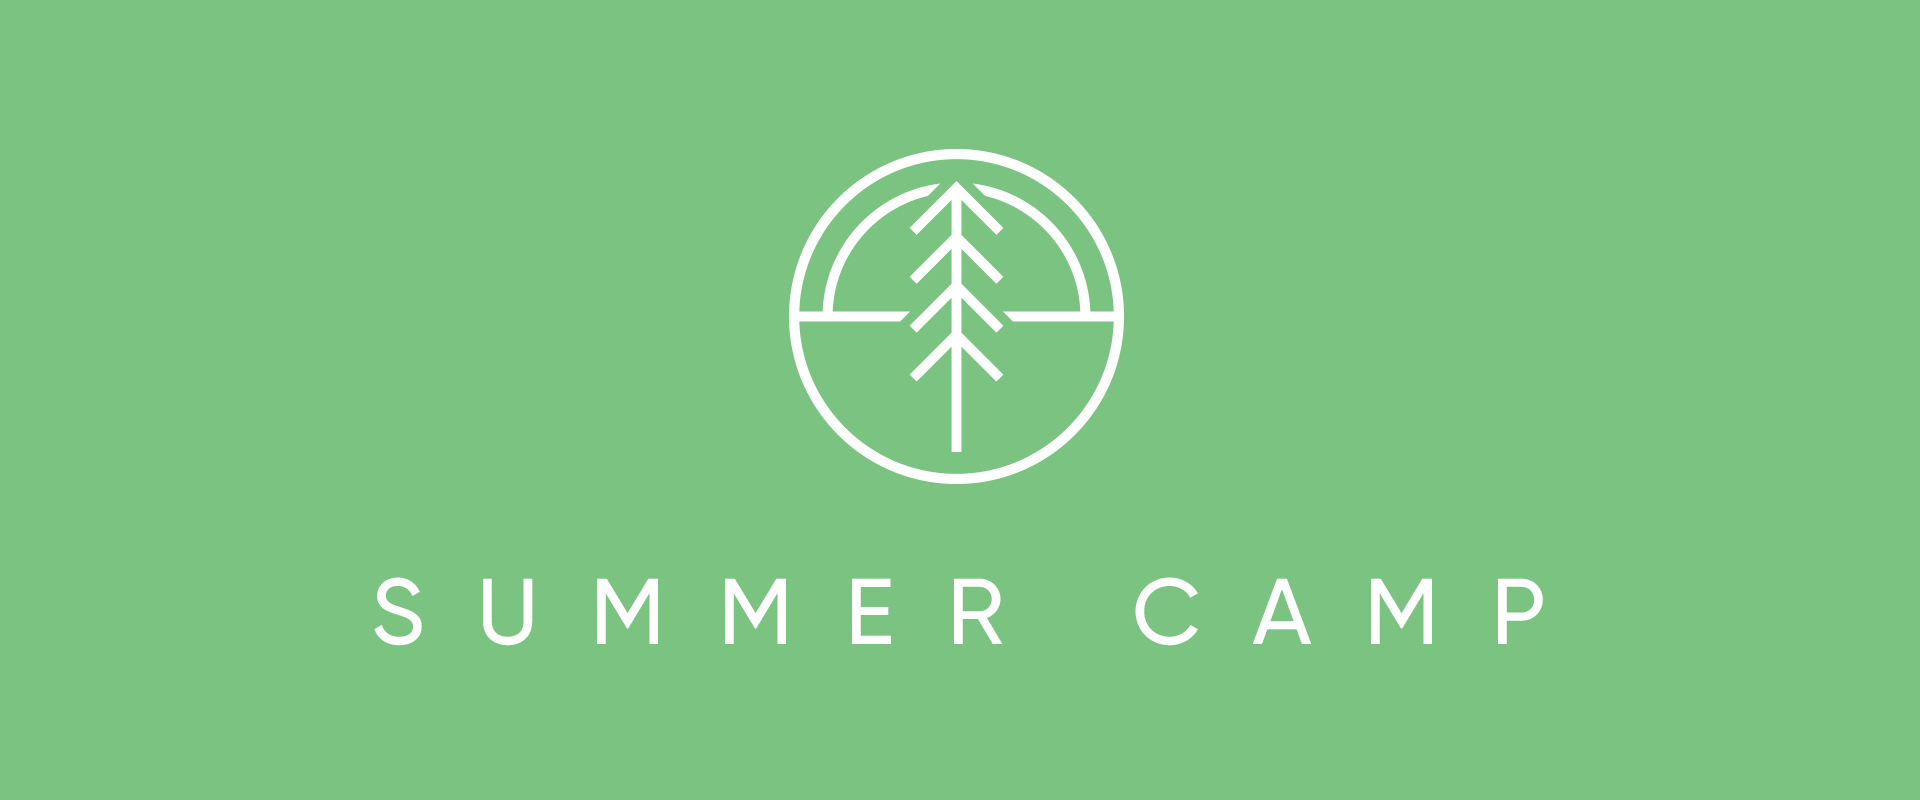 Summer camp events page